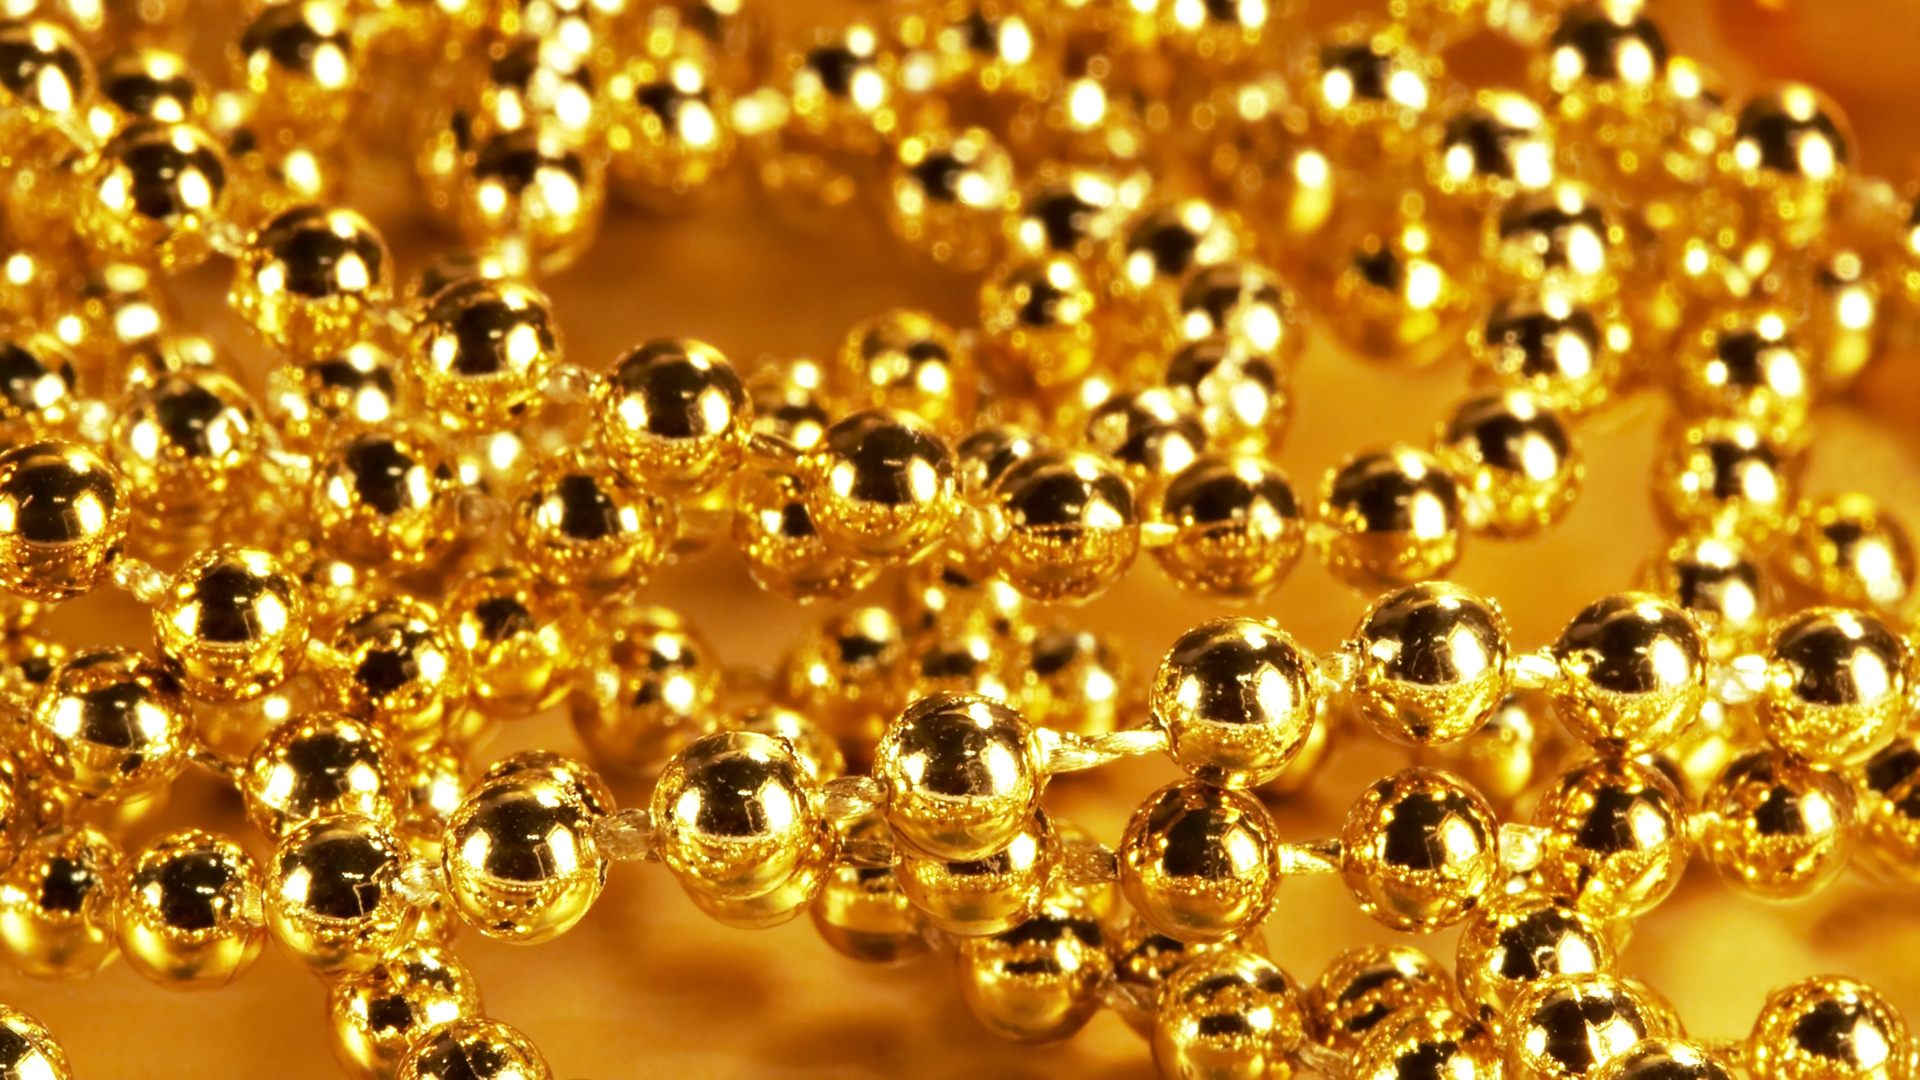 ... Gold wallpaper 3 ...